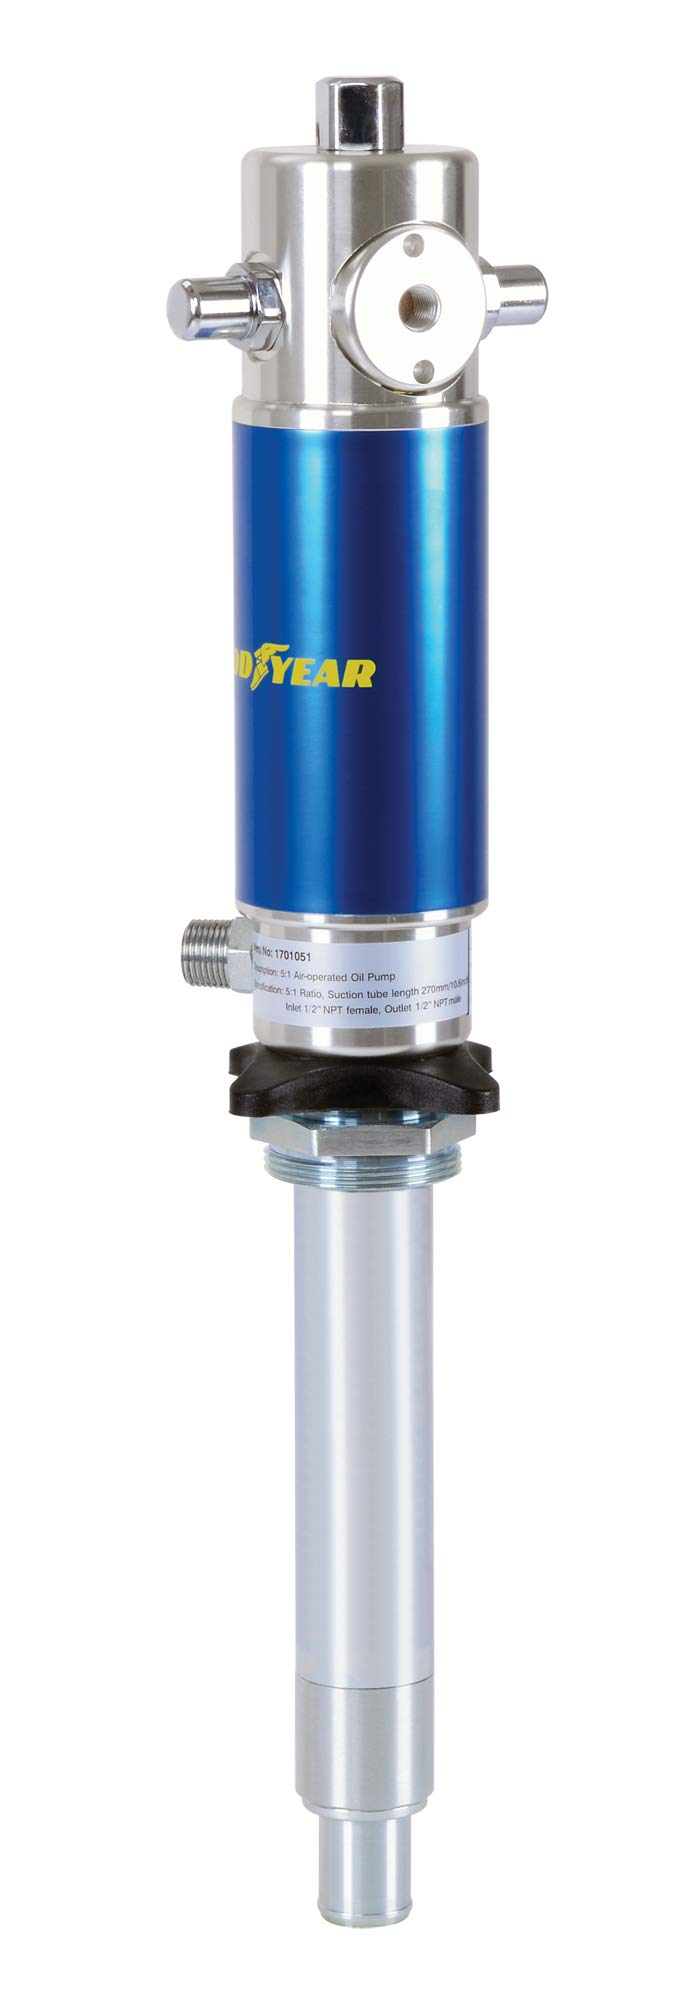 Goodyear Heavy Duty Pro Universal Air Operated Oil Transfer Pump 2 Years Warranty (5:1) by Goodyear (Image #2)